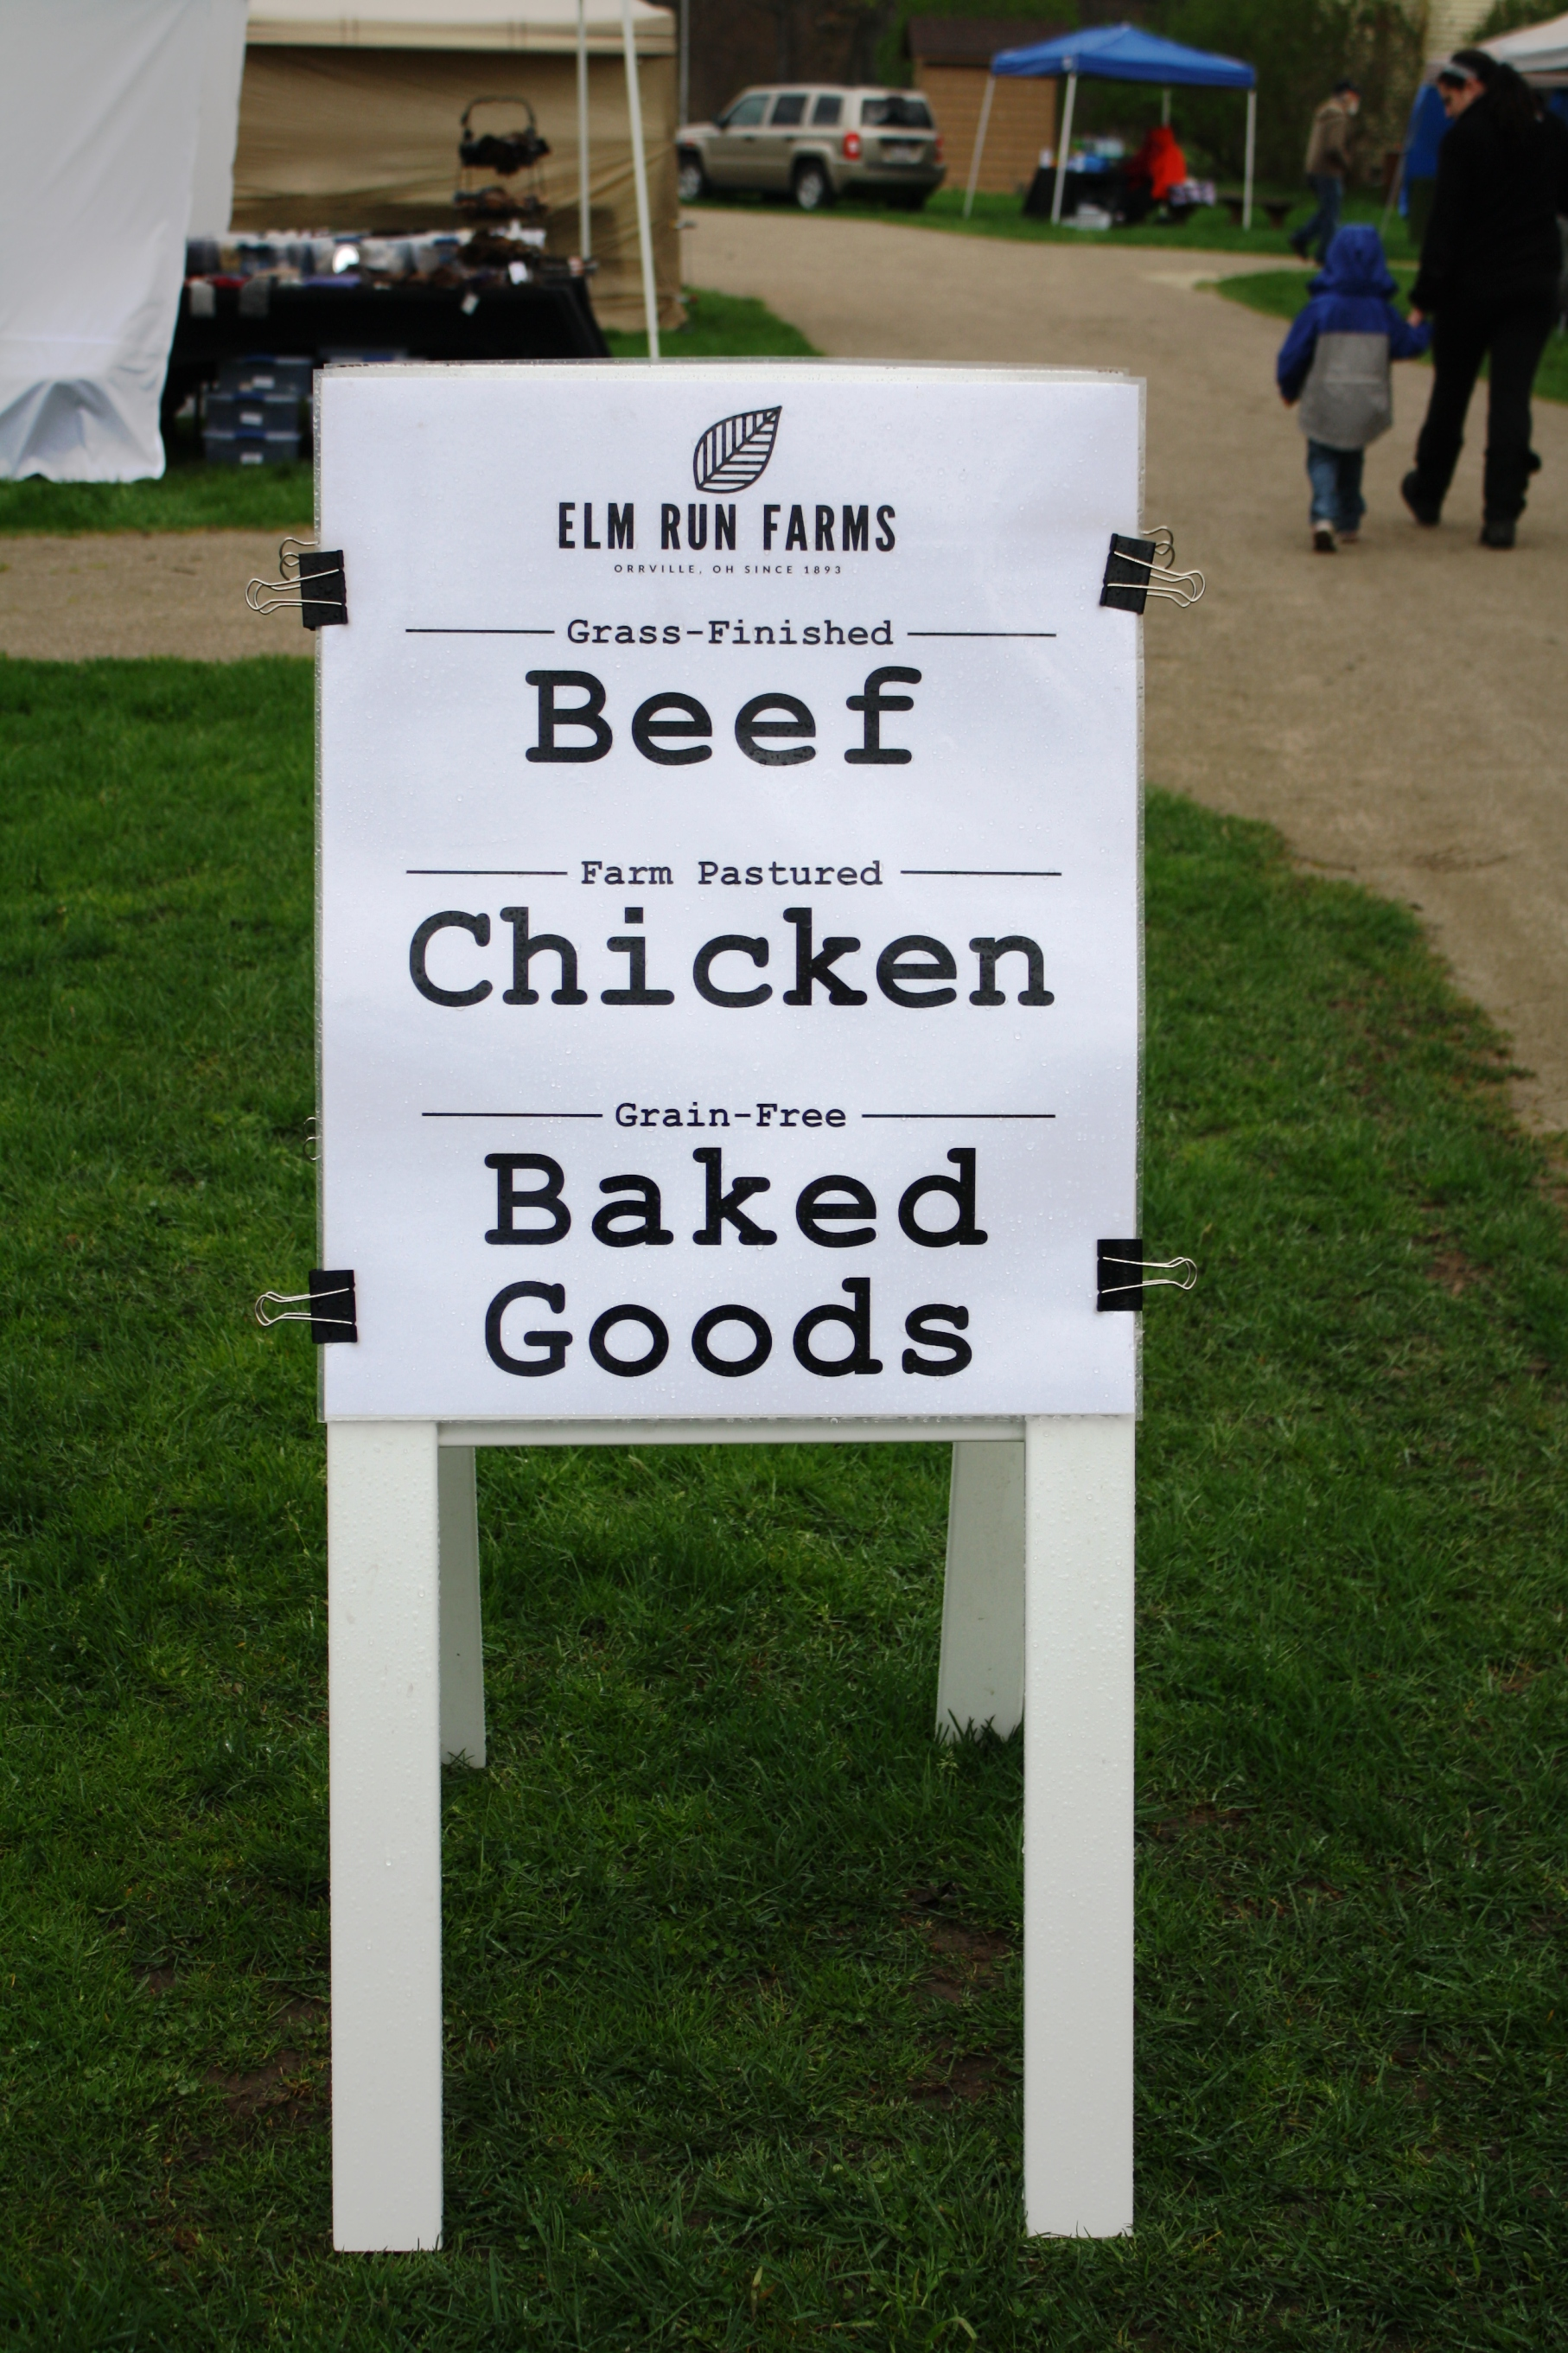 Beef, Chicken, and Baked Goods sign